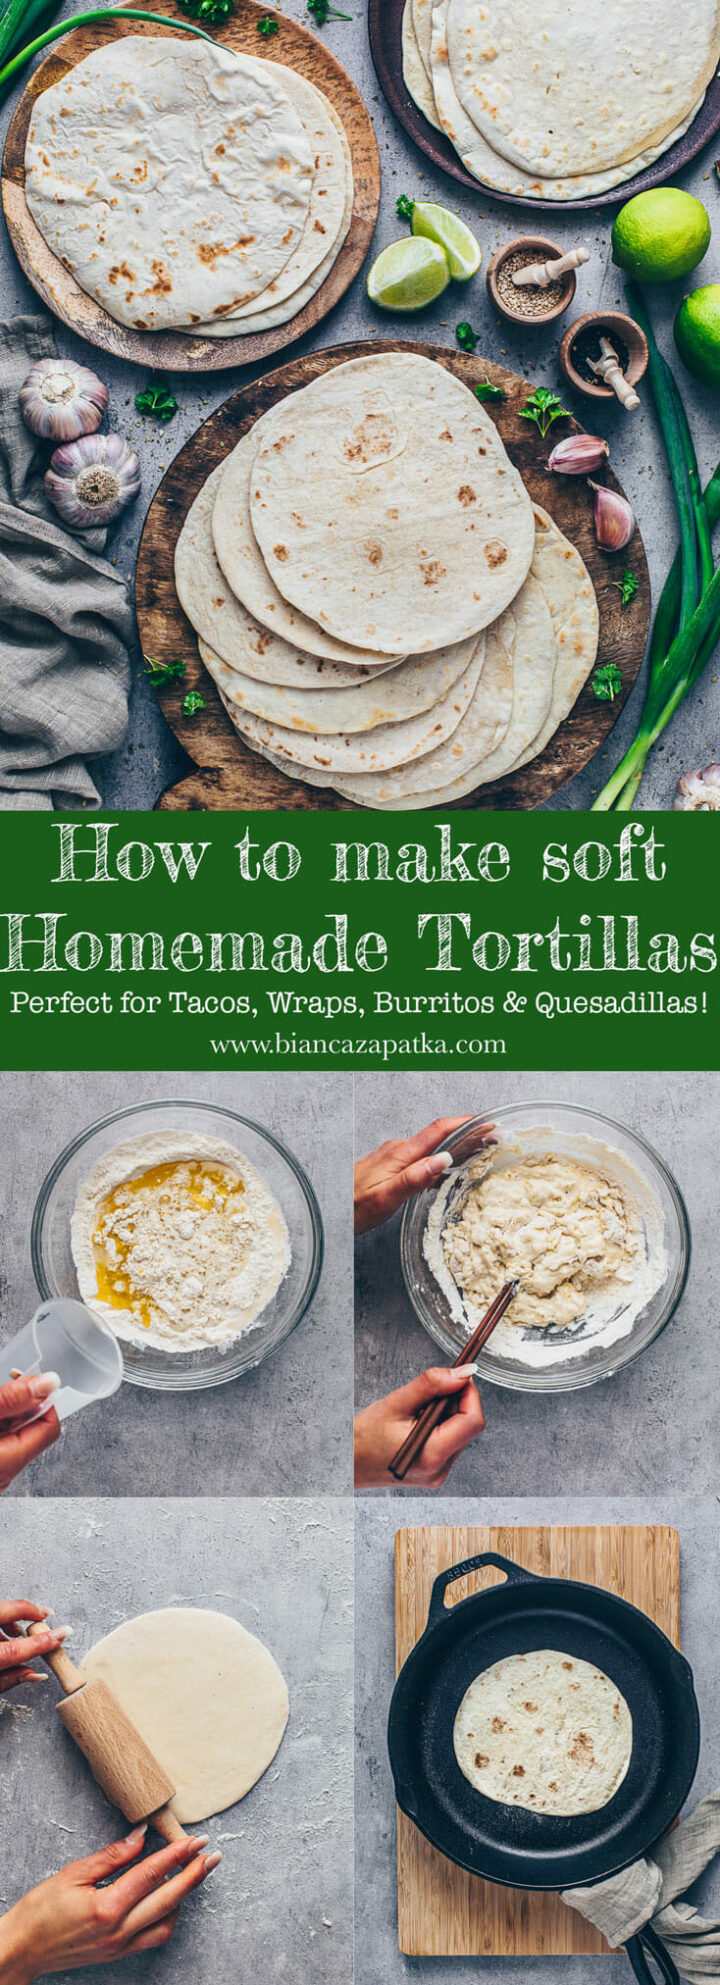 Homemade soft Tortillas from scratch | Easy step-by-step Recipe for soft Tacos, Wraps, Burritos, Quesadillas